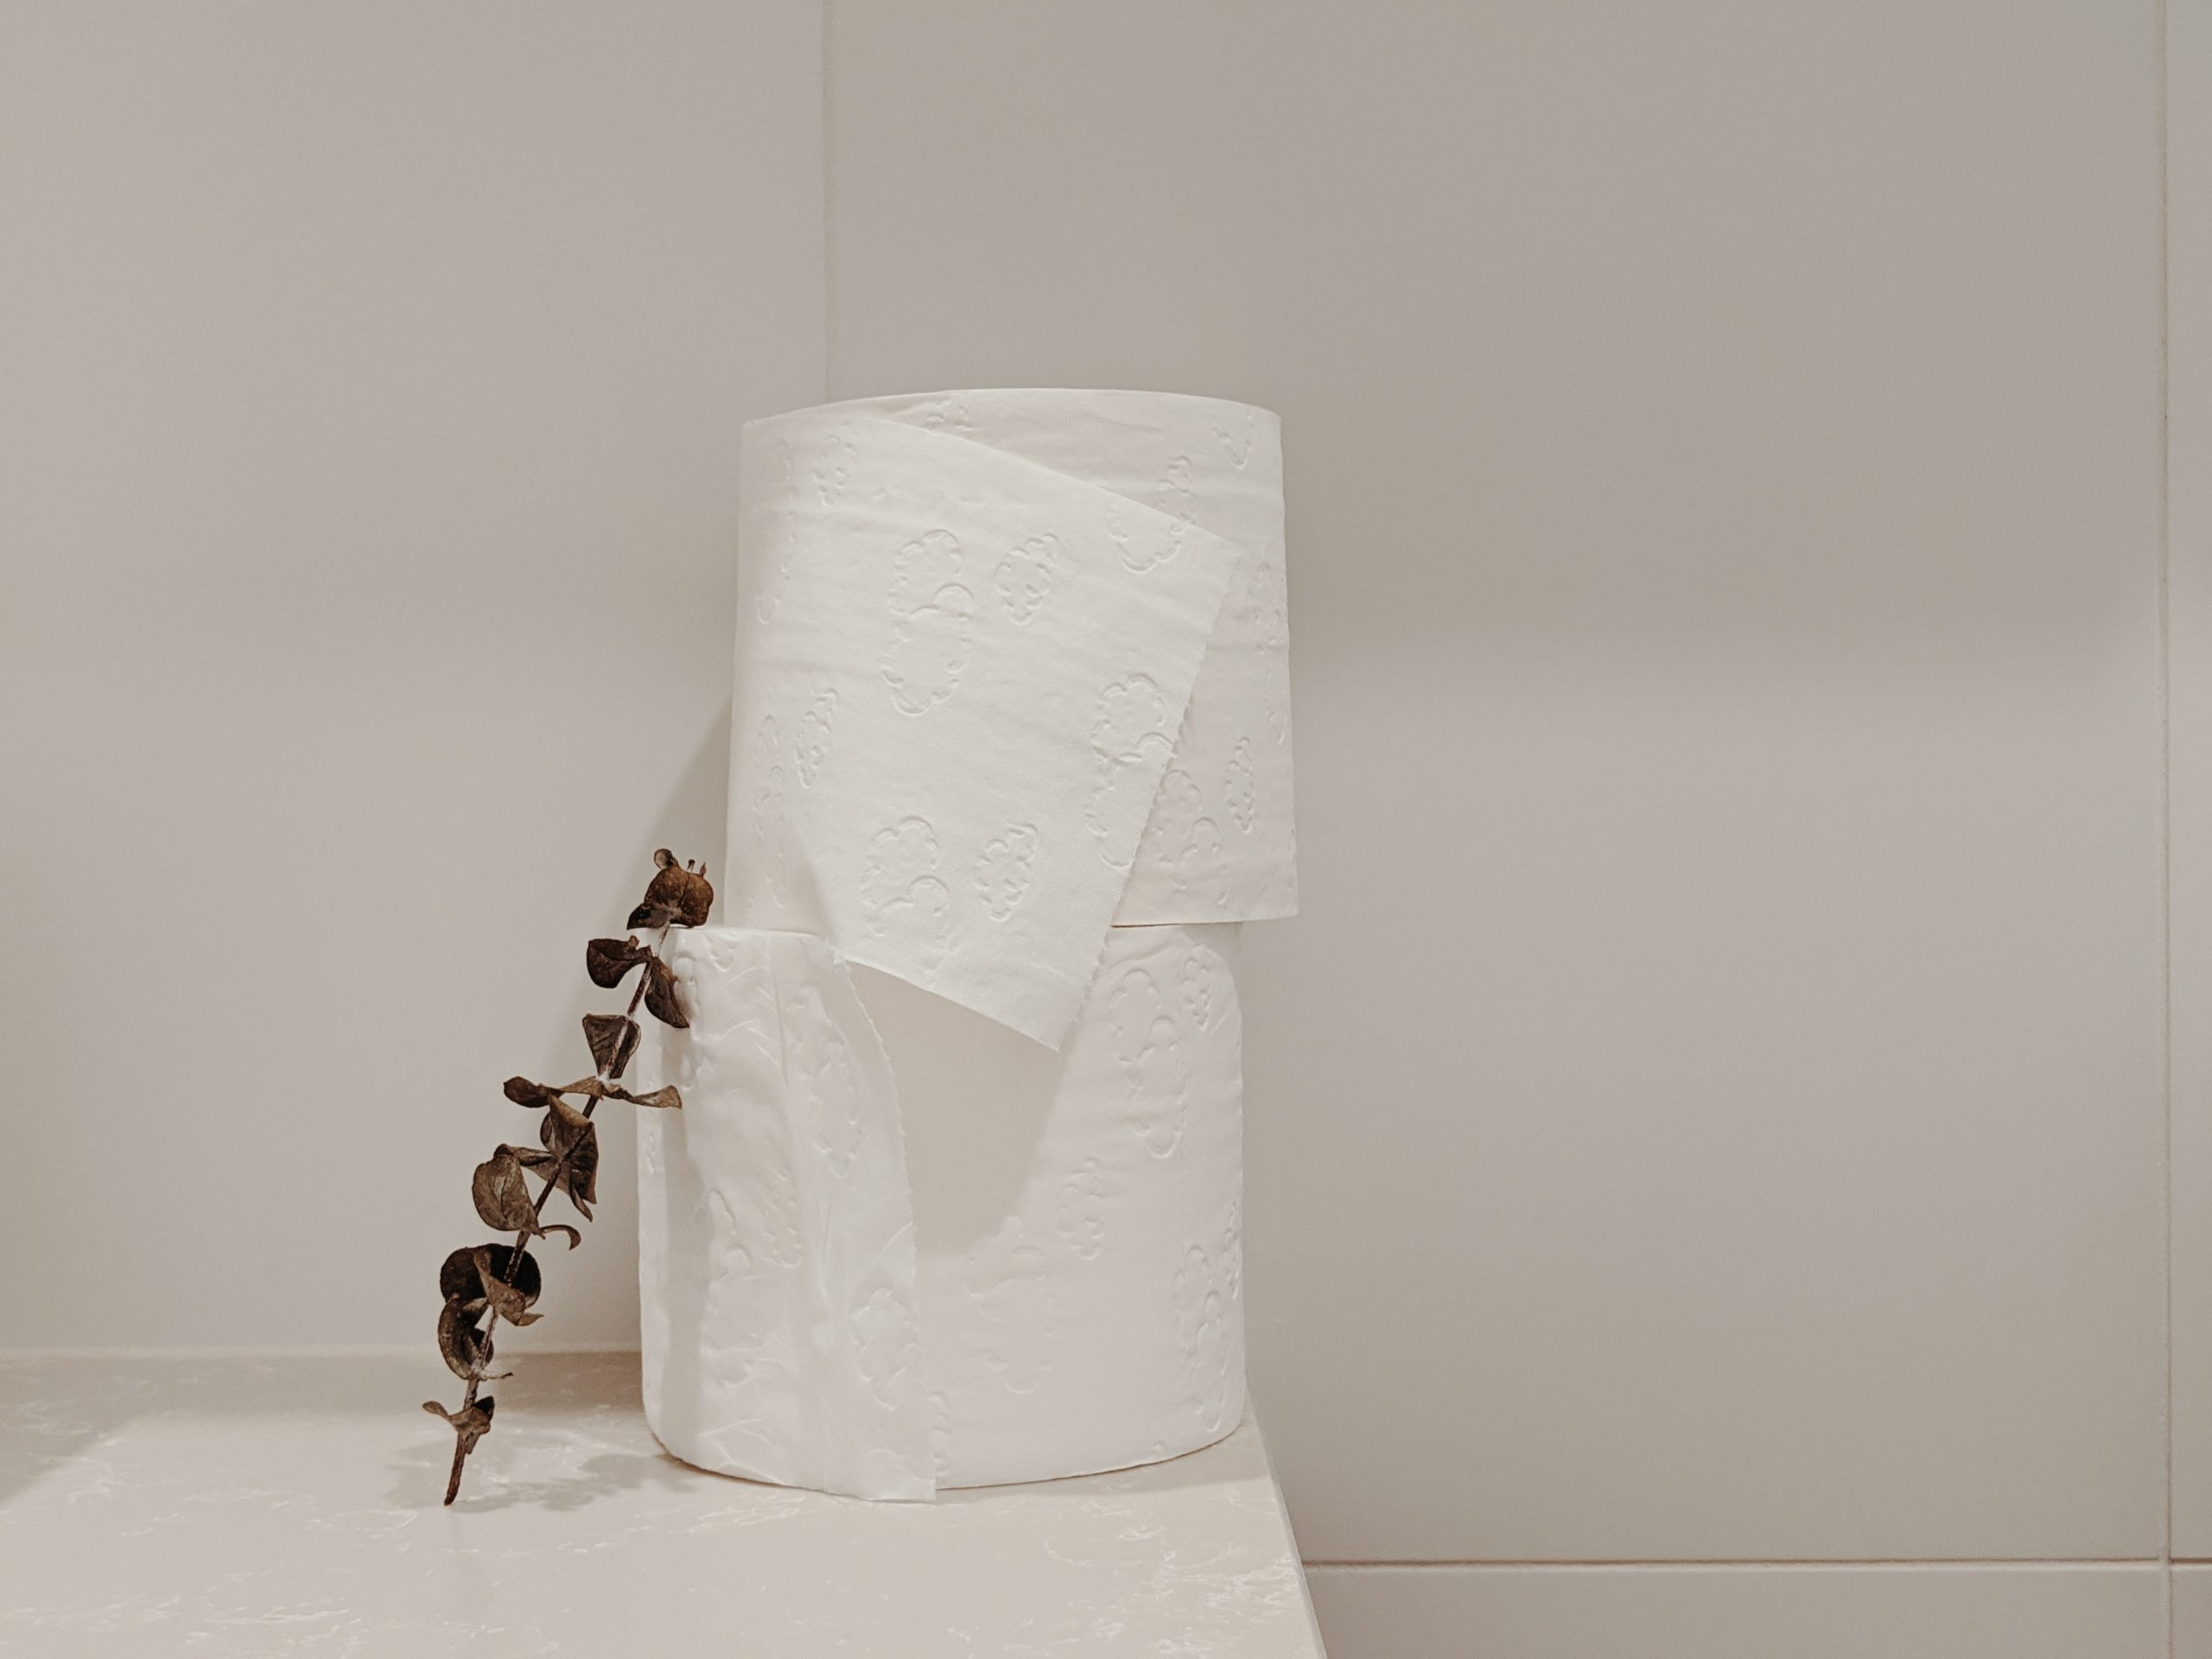 Stack of biodegradable toilet paper